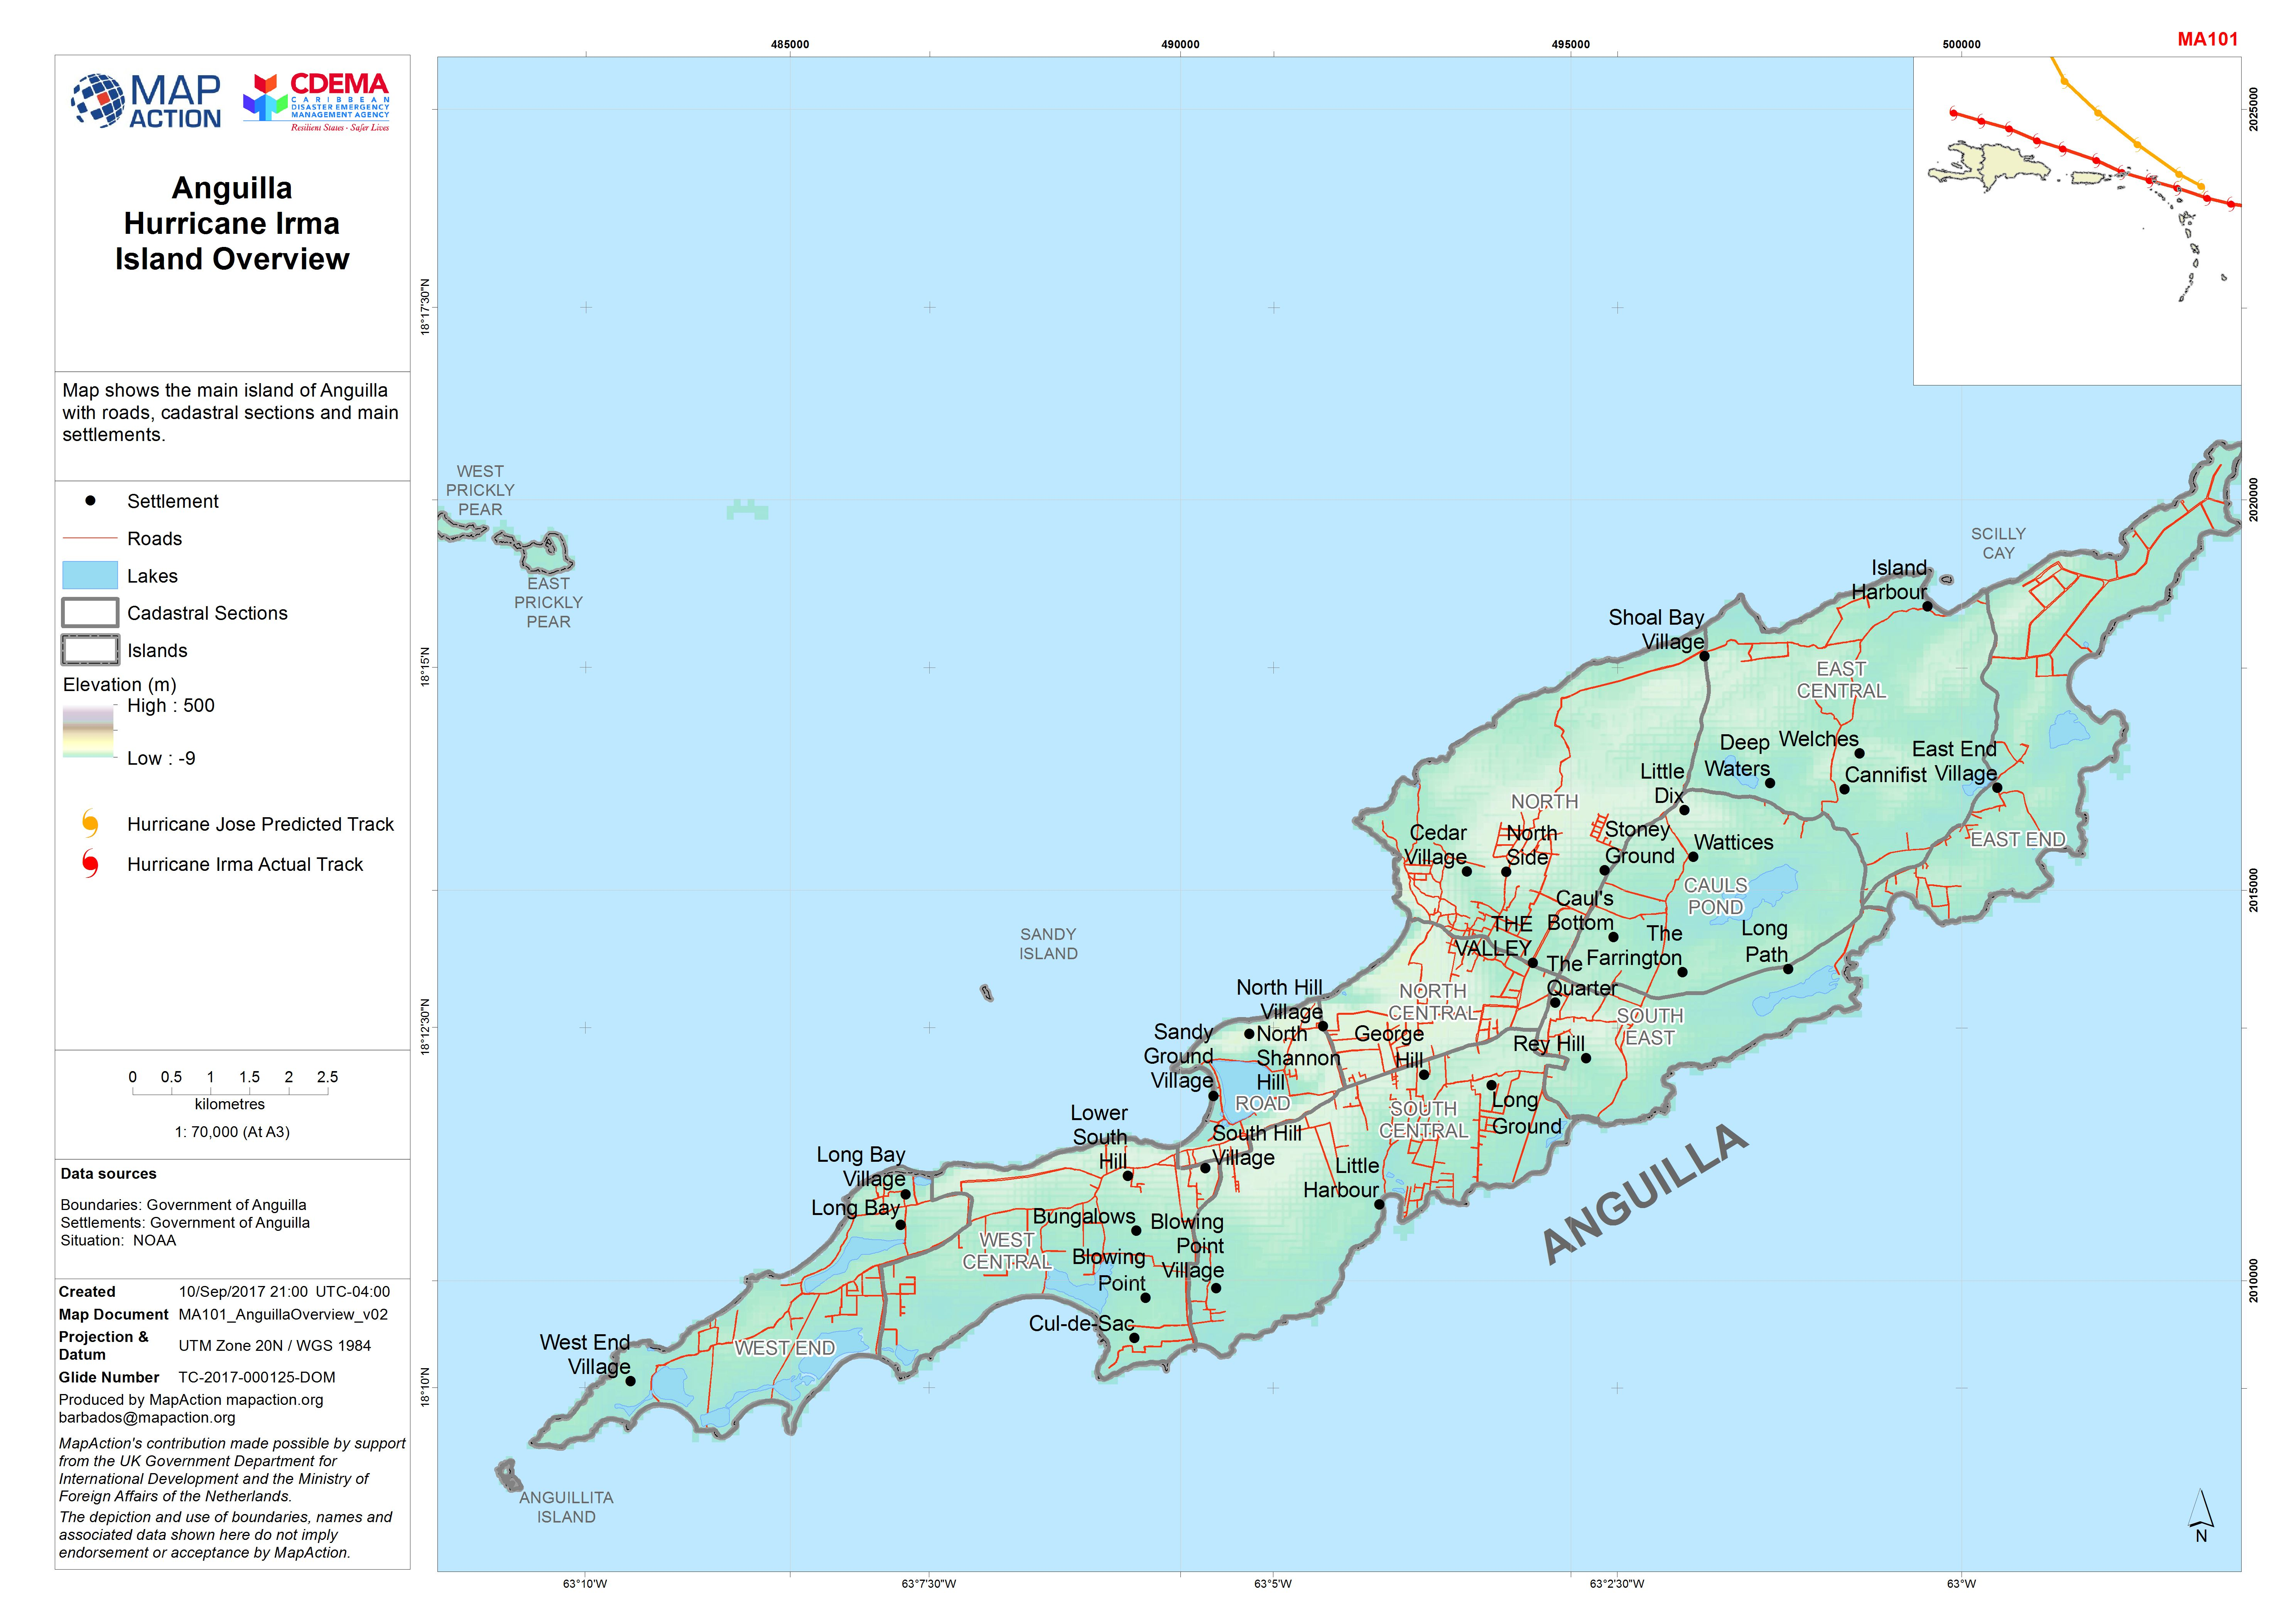 Hurricane Irma - Anguilla and British Virgin Islands - MapAction on map of montserrat, map of st barts, map of martinique, map of caribbean, map of antigua, map of st maarten, map of jamaica, map of french southern territories, map of aruba, map of the bahamas, map of the south sandwich islands, map of dominica, map of guadeloupe, map of cuba, map of st martin, map of argentina, map of barbados, map of costa rica, map of nepal,